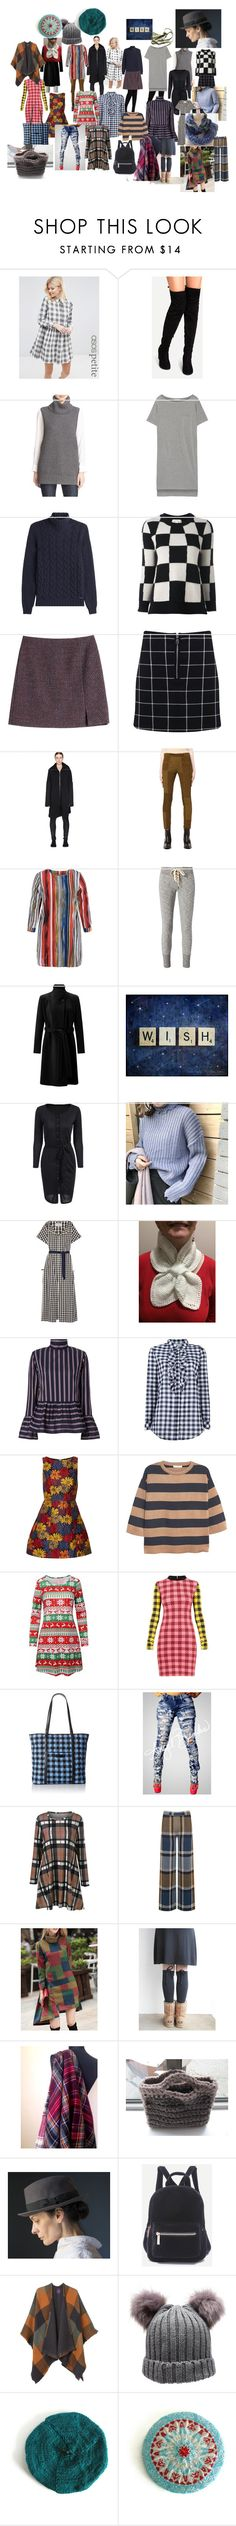 """wish list......................"" by talma-vardi on Polyvore featuring ASOS, Autumn Cashmere, T By Alexander Wang, Woolrich, Marc Jacobs, Carven, Miss Selfridge, Lost & Found, Haider Ackermann and NSF"